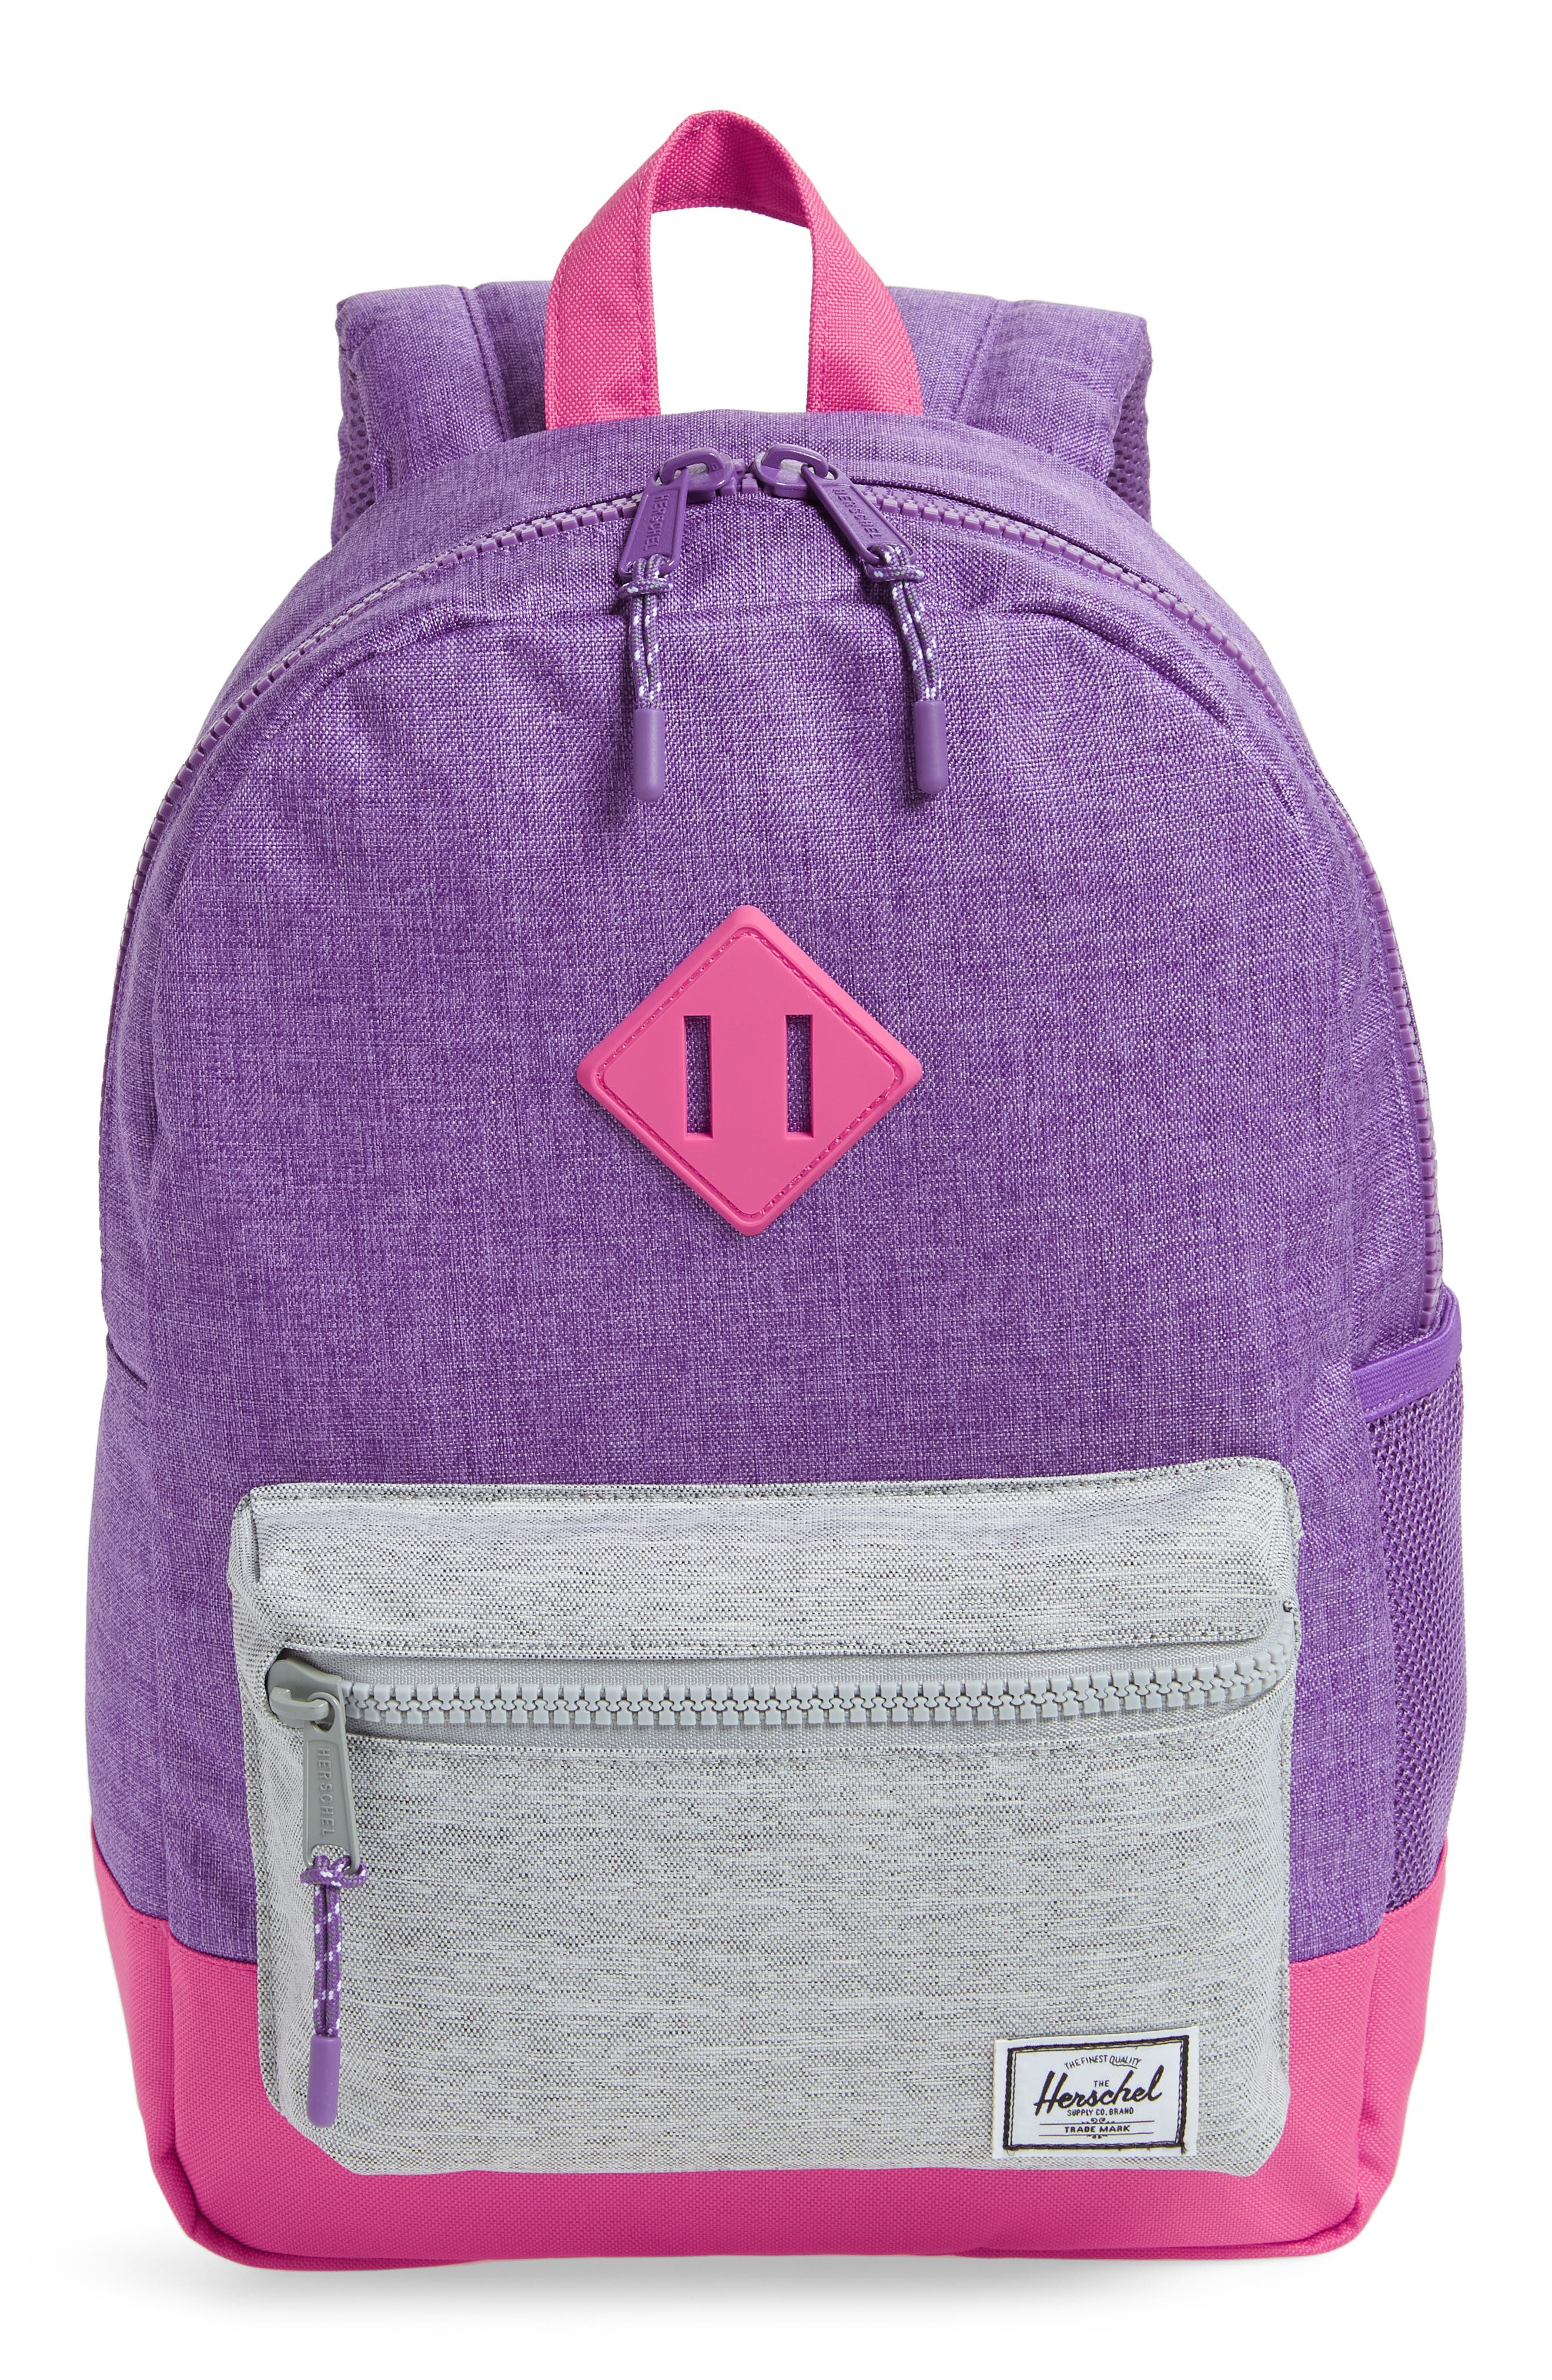 Heritage Backpack,                             Main thumbnail 1, color,                             515